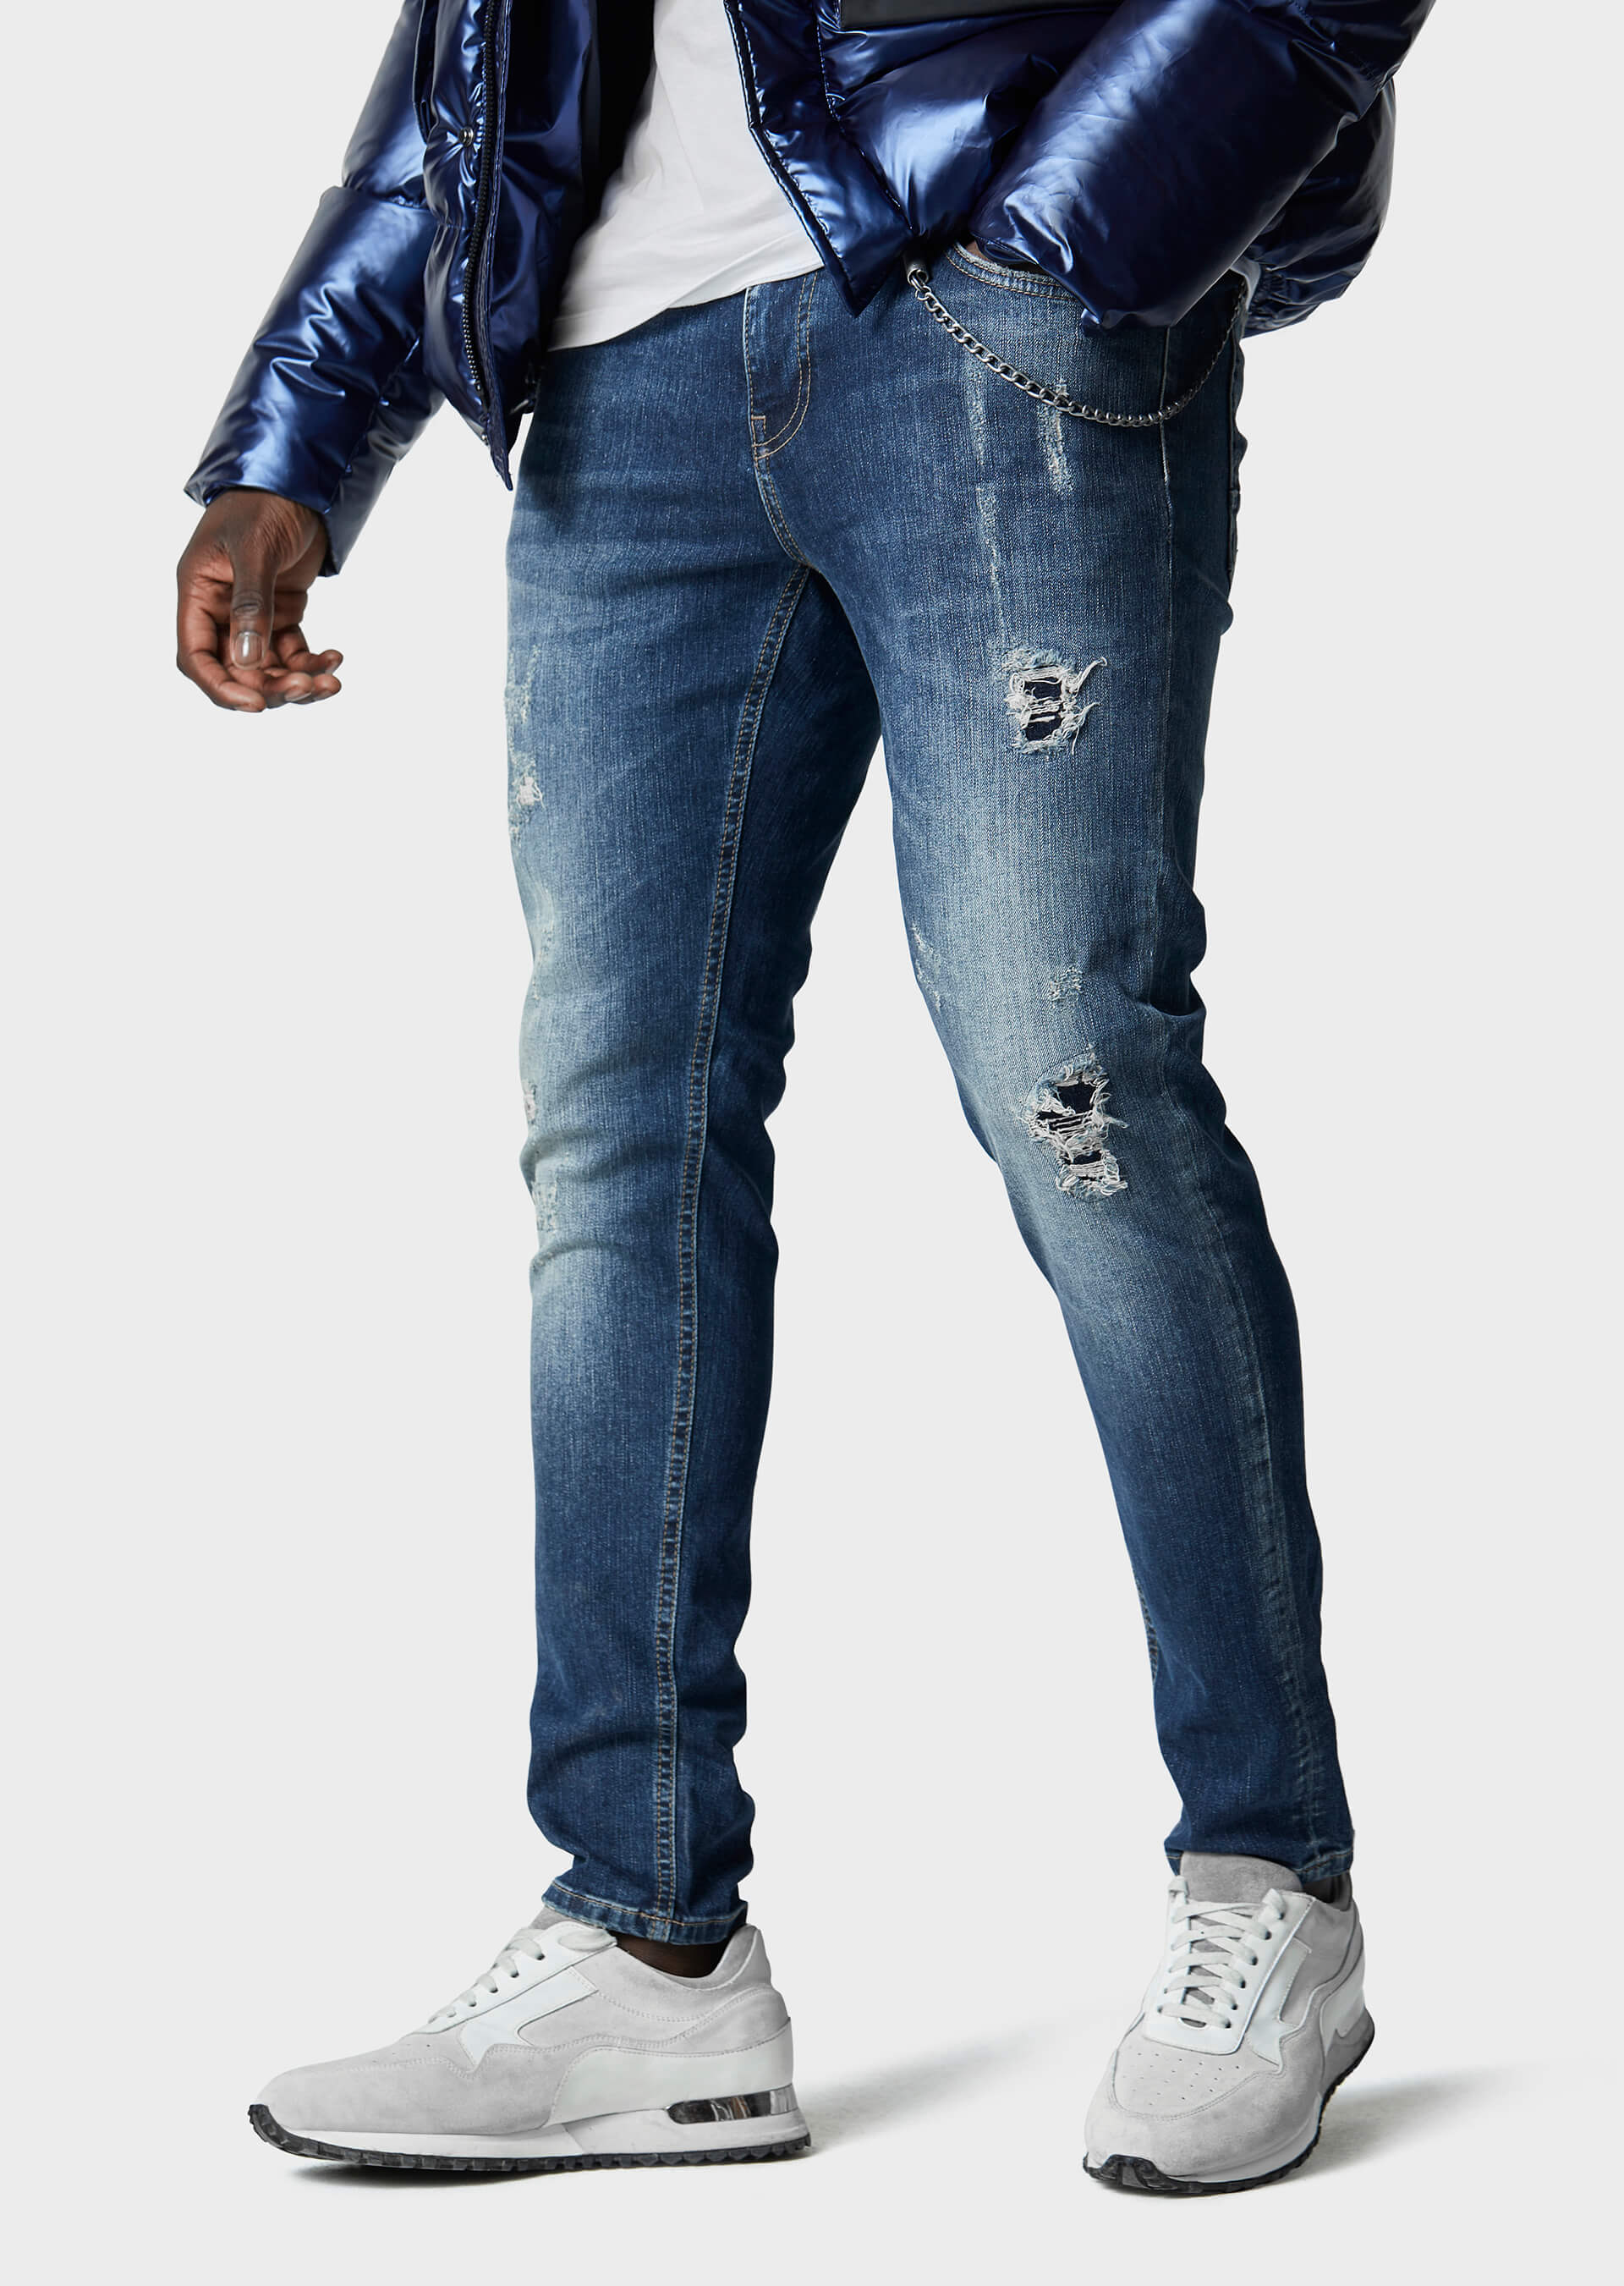 Moriarty COB 717 Slim Fit Jeans second_image